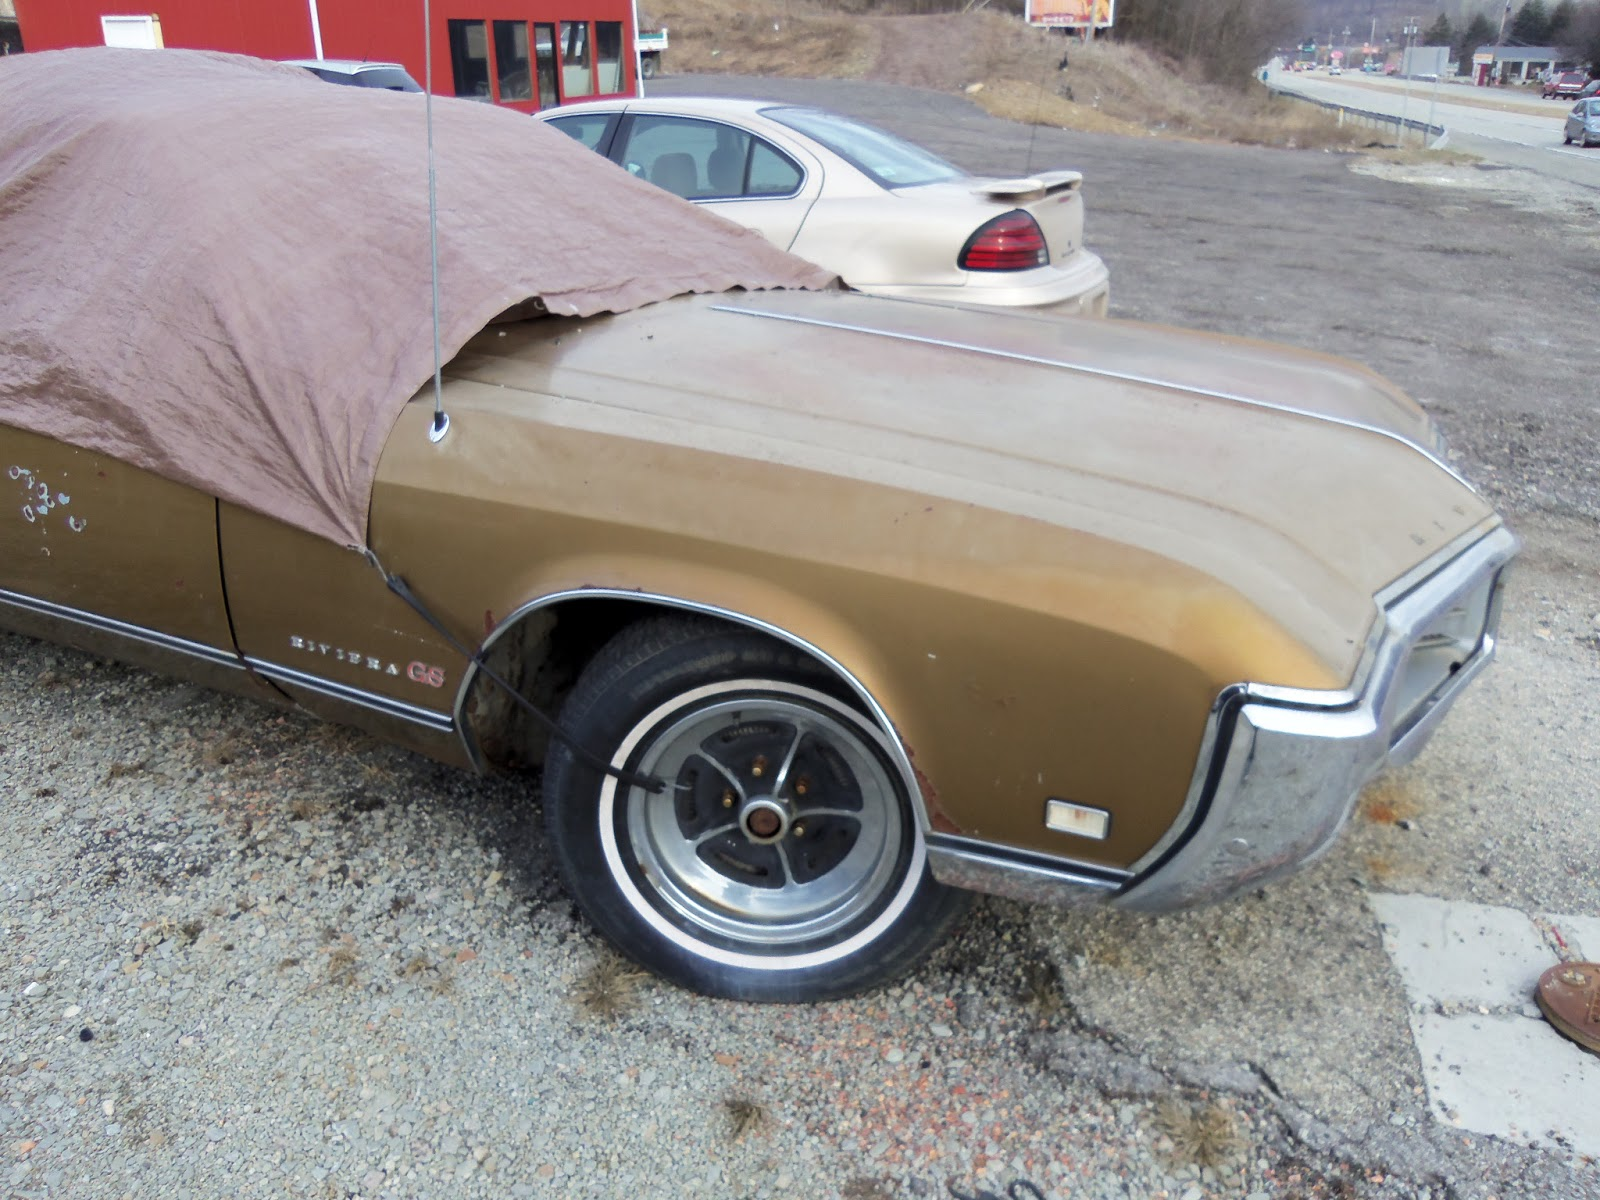 1969 Buick Riviera GS: Craigslist Capture | Wayward Cars: All things ...